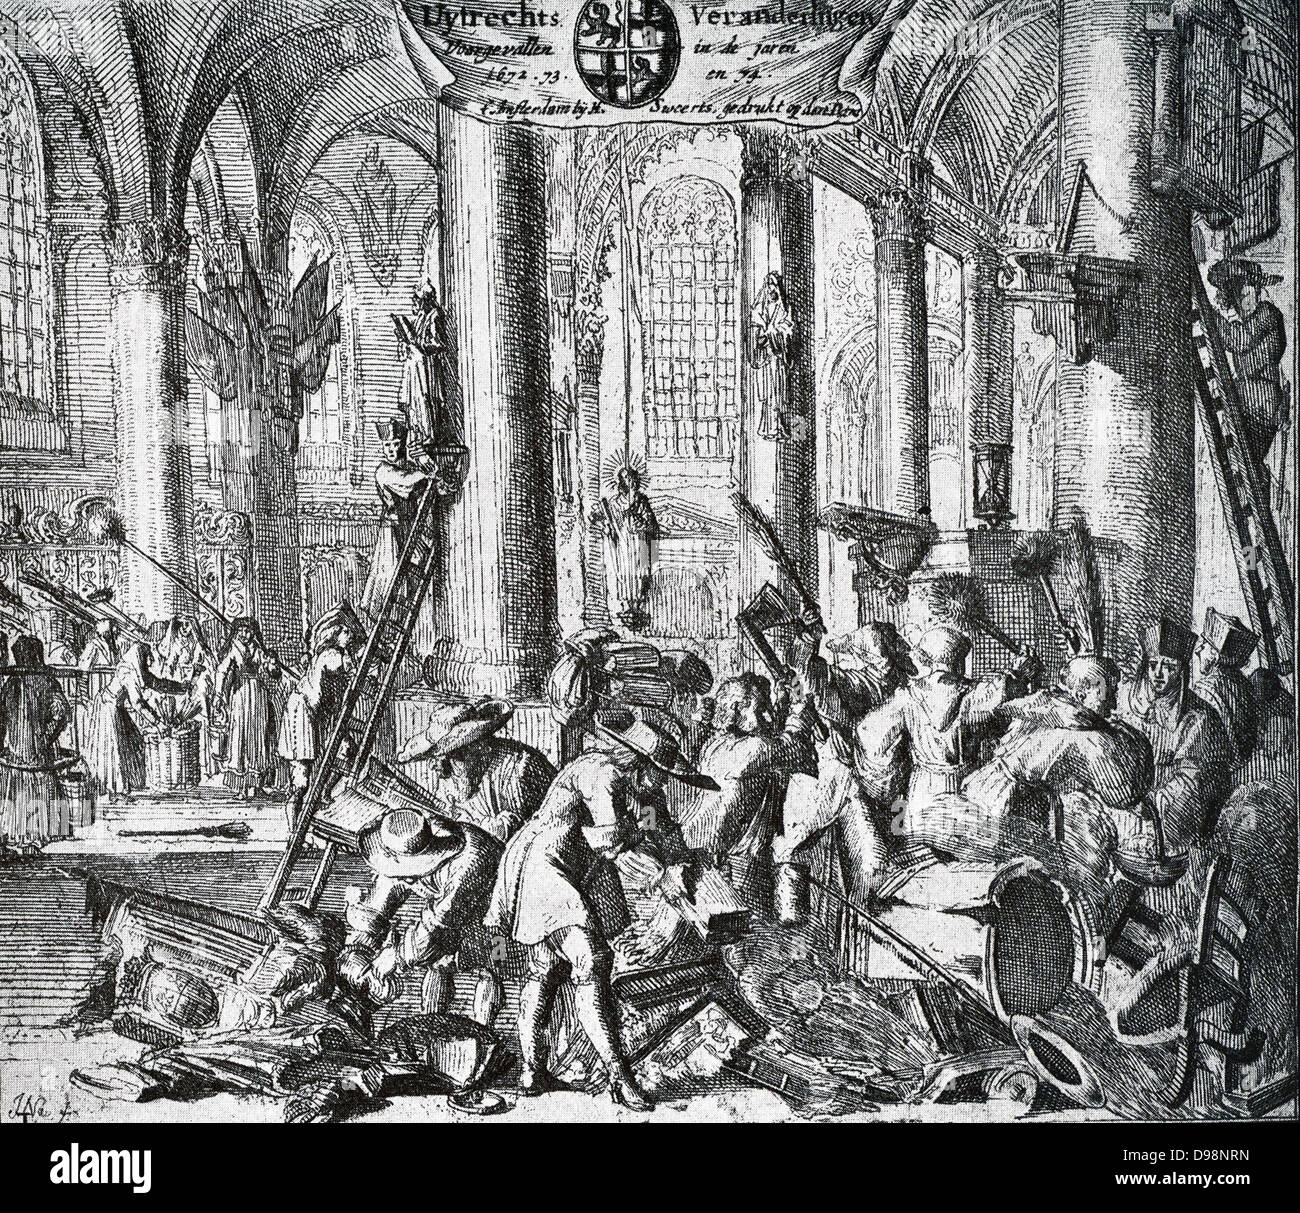 1672-1674. In 1672 when the French had taken possession of Utrecht, the cathedral was again brought into use for - Stock Image